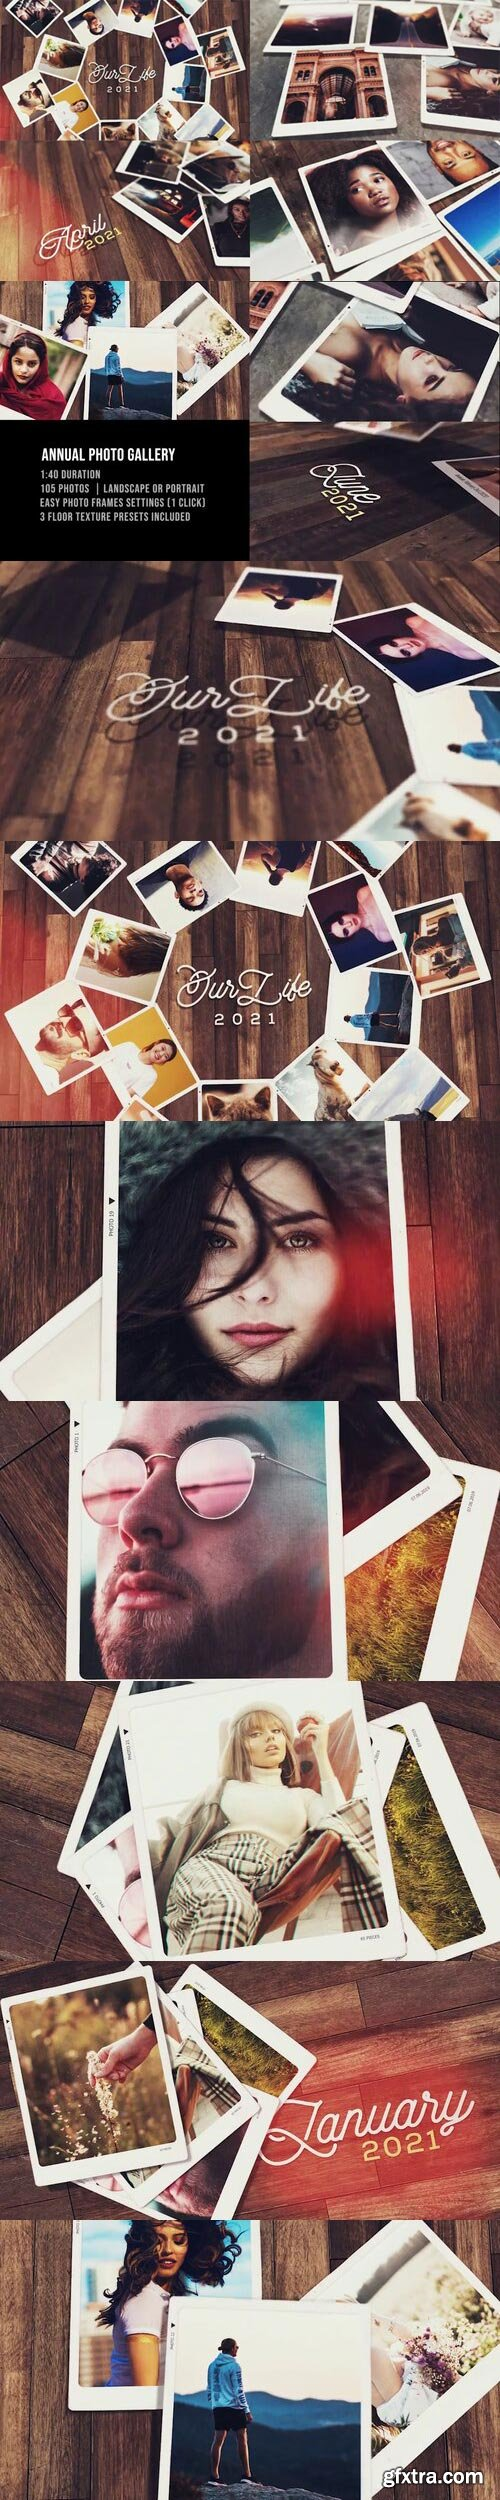 Videohive - Annual Photo Gallery - 30275906